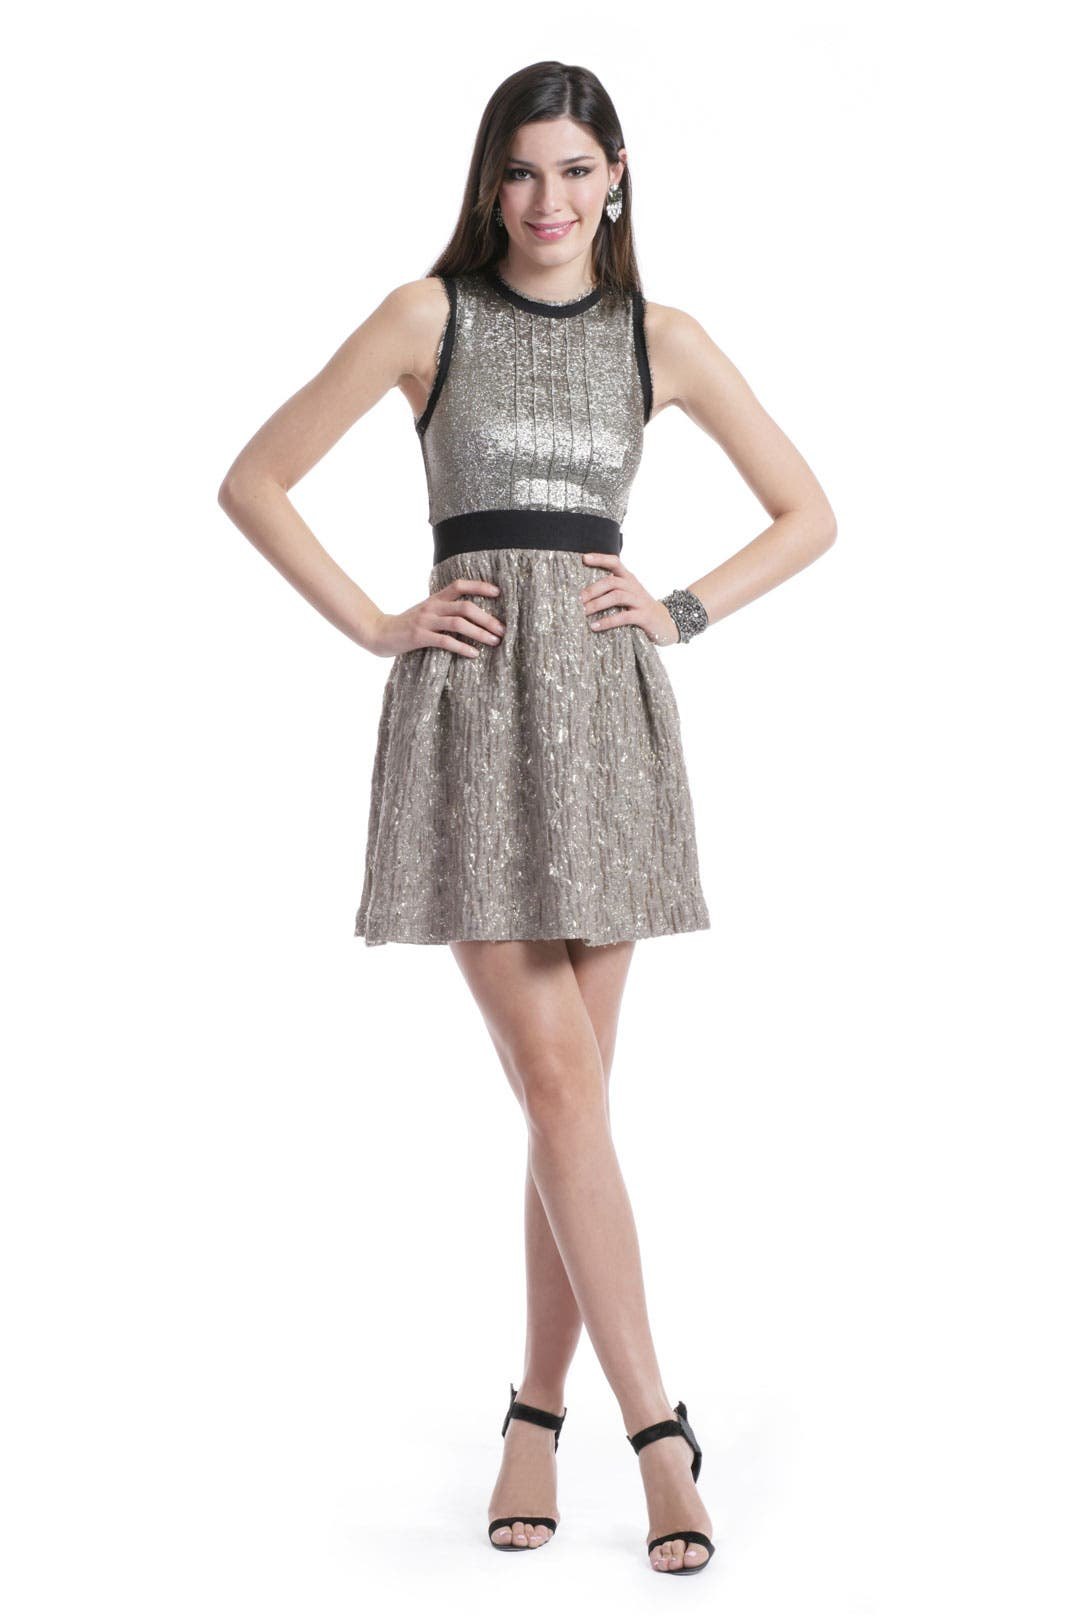 Sparkle in My Eye Dress by Proenza Schouler